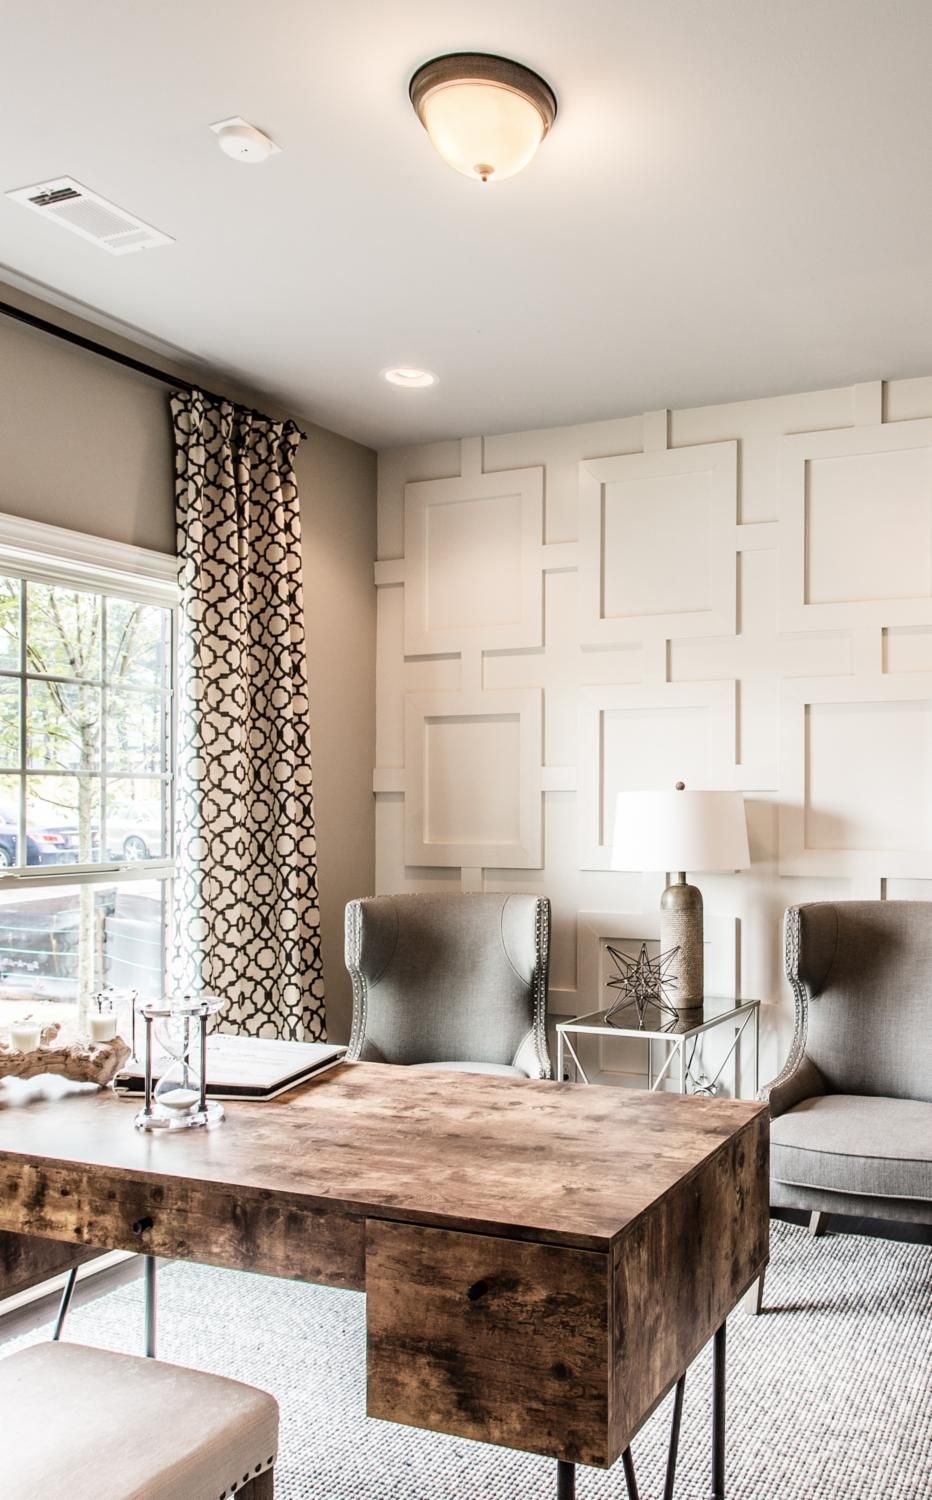 67 Beautiful Modern Home Design Ideas In One Photo Gallery: Inspire Your Creativity With Beautiful Home Office Designs...